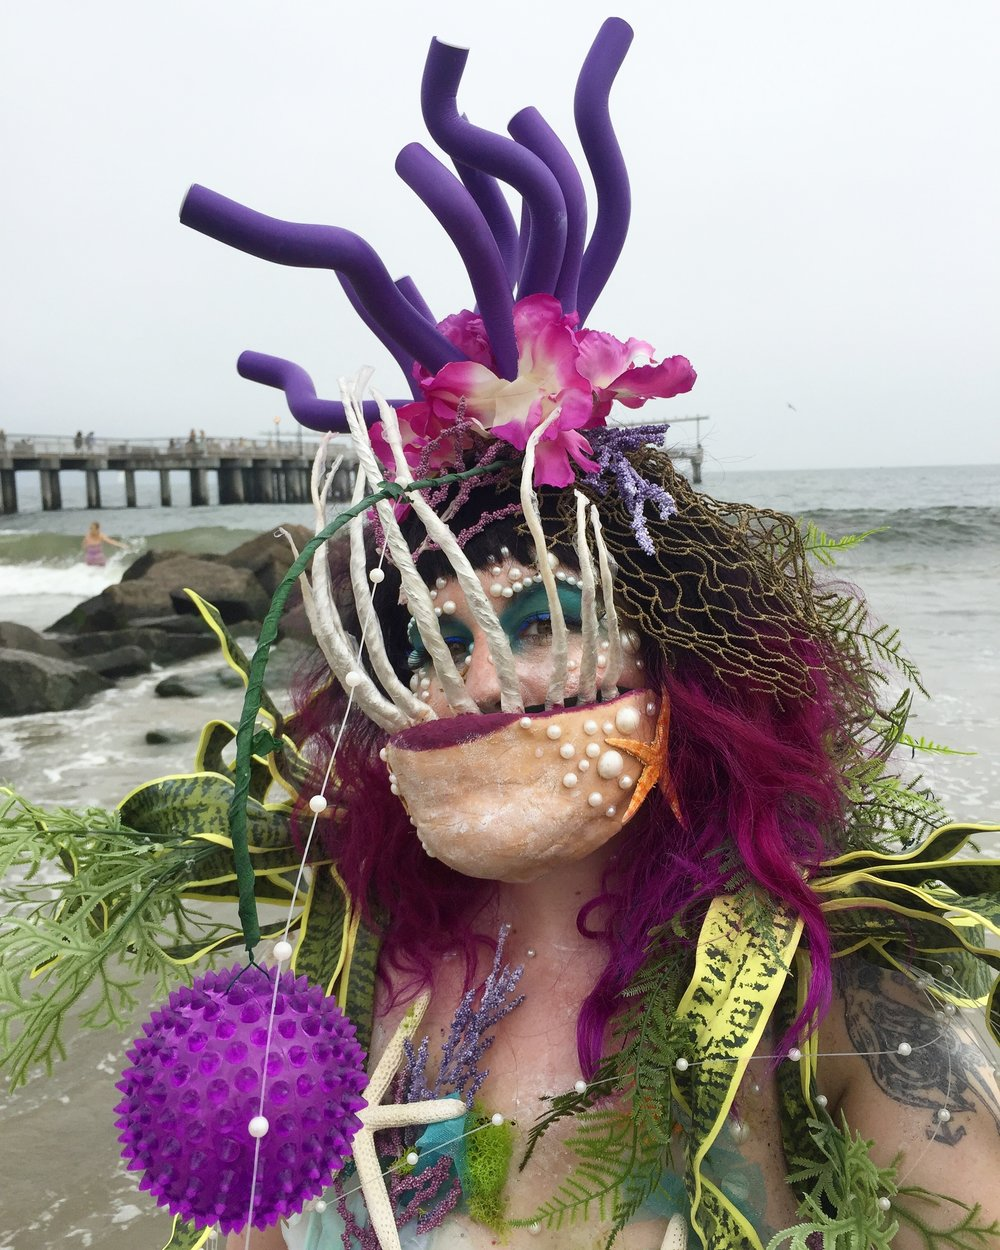 Anglerfish Mermaid Costume //  Coney Island Mermaid Parad e // 2017   Anglerfish jaw // Anglerfish light-up lure // Sea anemone headdress // Kelp shoulder pieces // Makeup